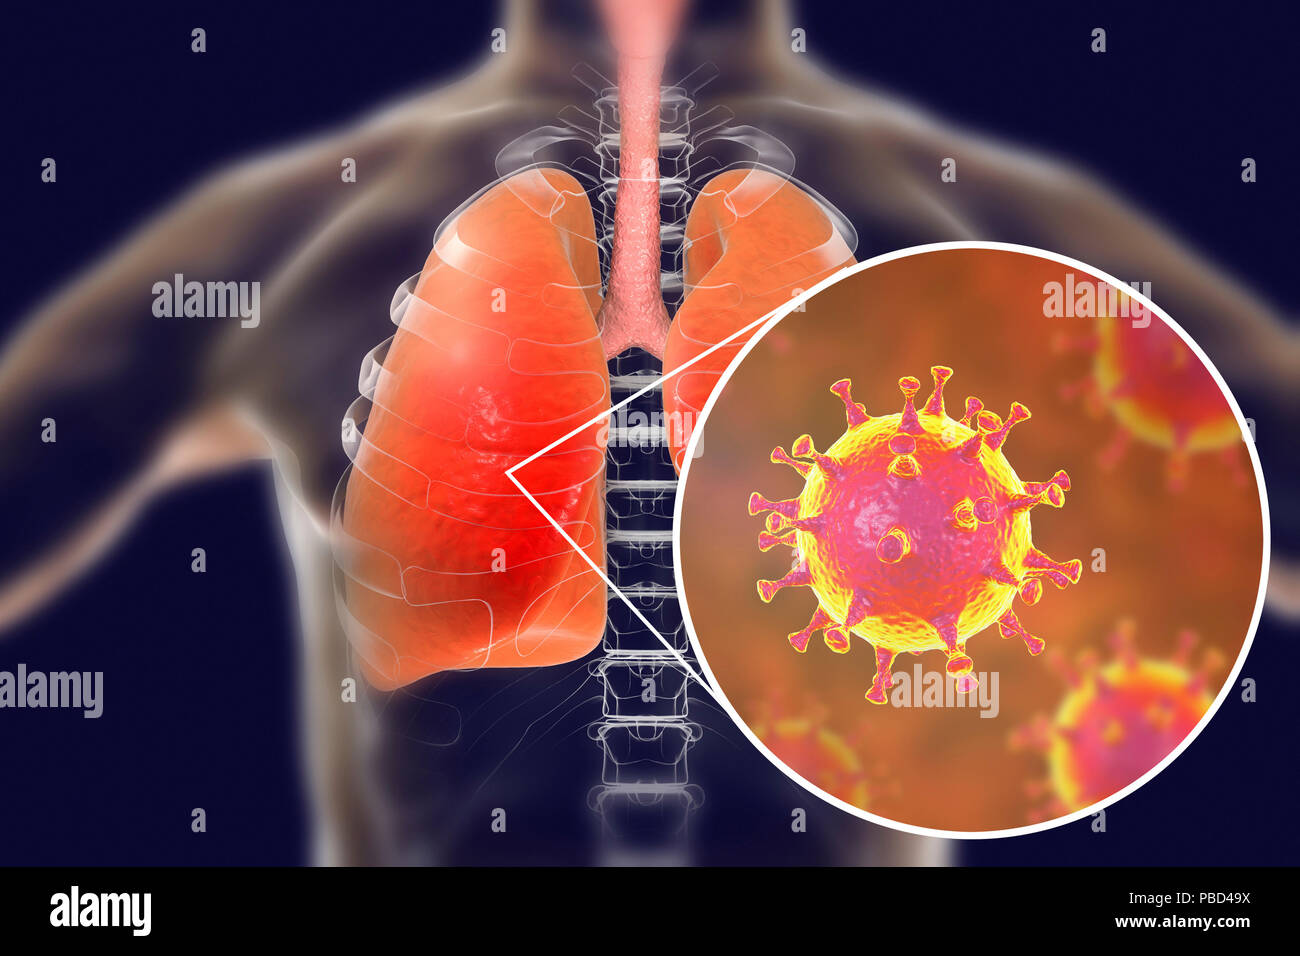 MERS virus infection of lungs, conceptual illustration. MERS (Middle East respiratory syndrome) is a viral respiratory illness caused by the MERS-associated coronavirus (MERS-CoV). Formerly known as novel coronavirus, MERS was first identified in Saudi Arabia in 2012. Most people infected with MERS develop severe acute respiratory illness with symptoms of fever, cough, and shortness of breath. - Stock Image